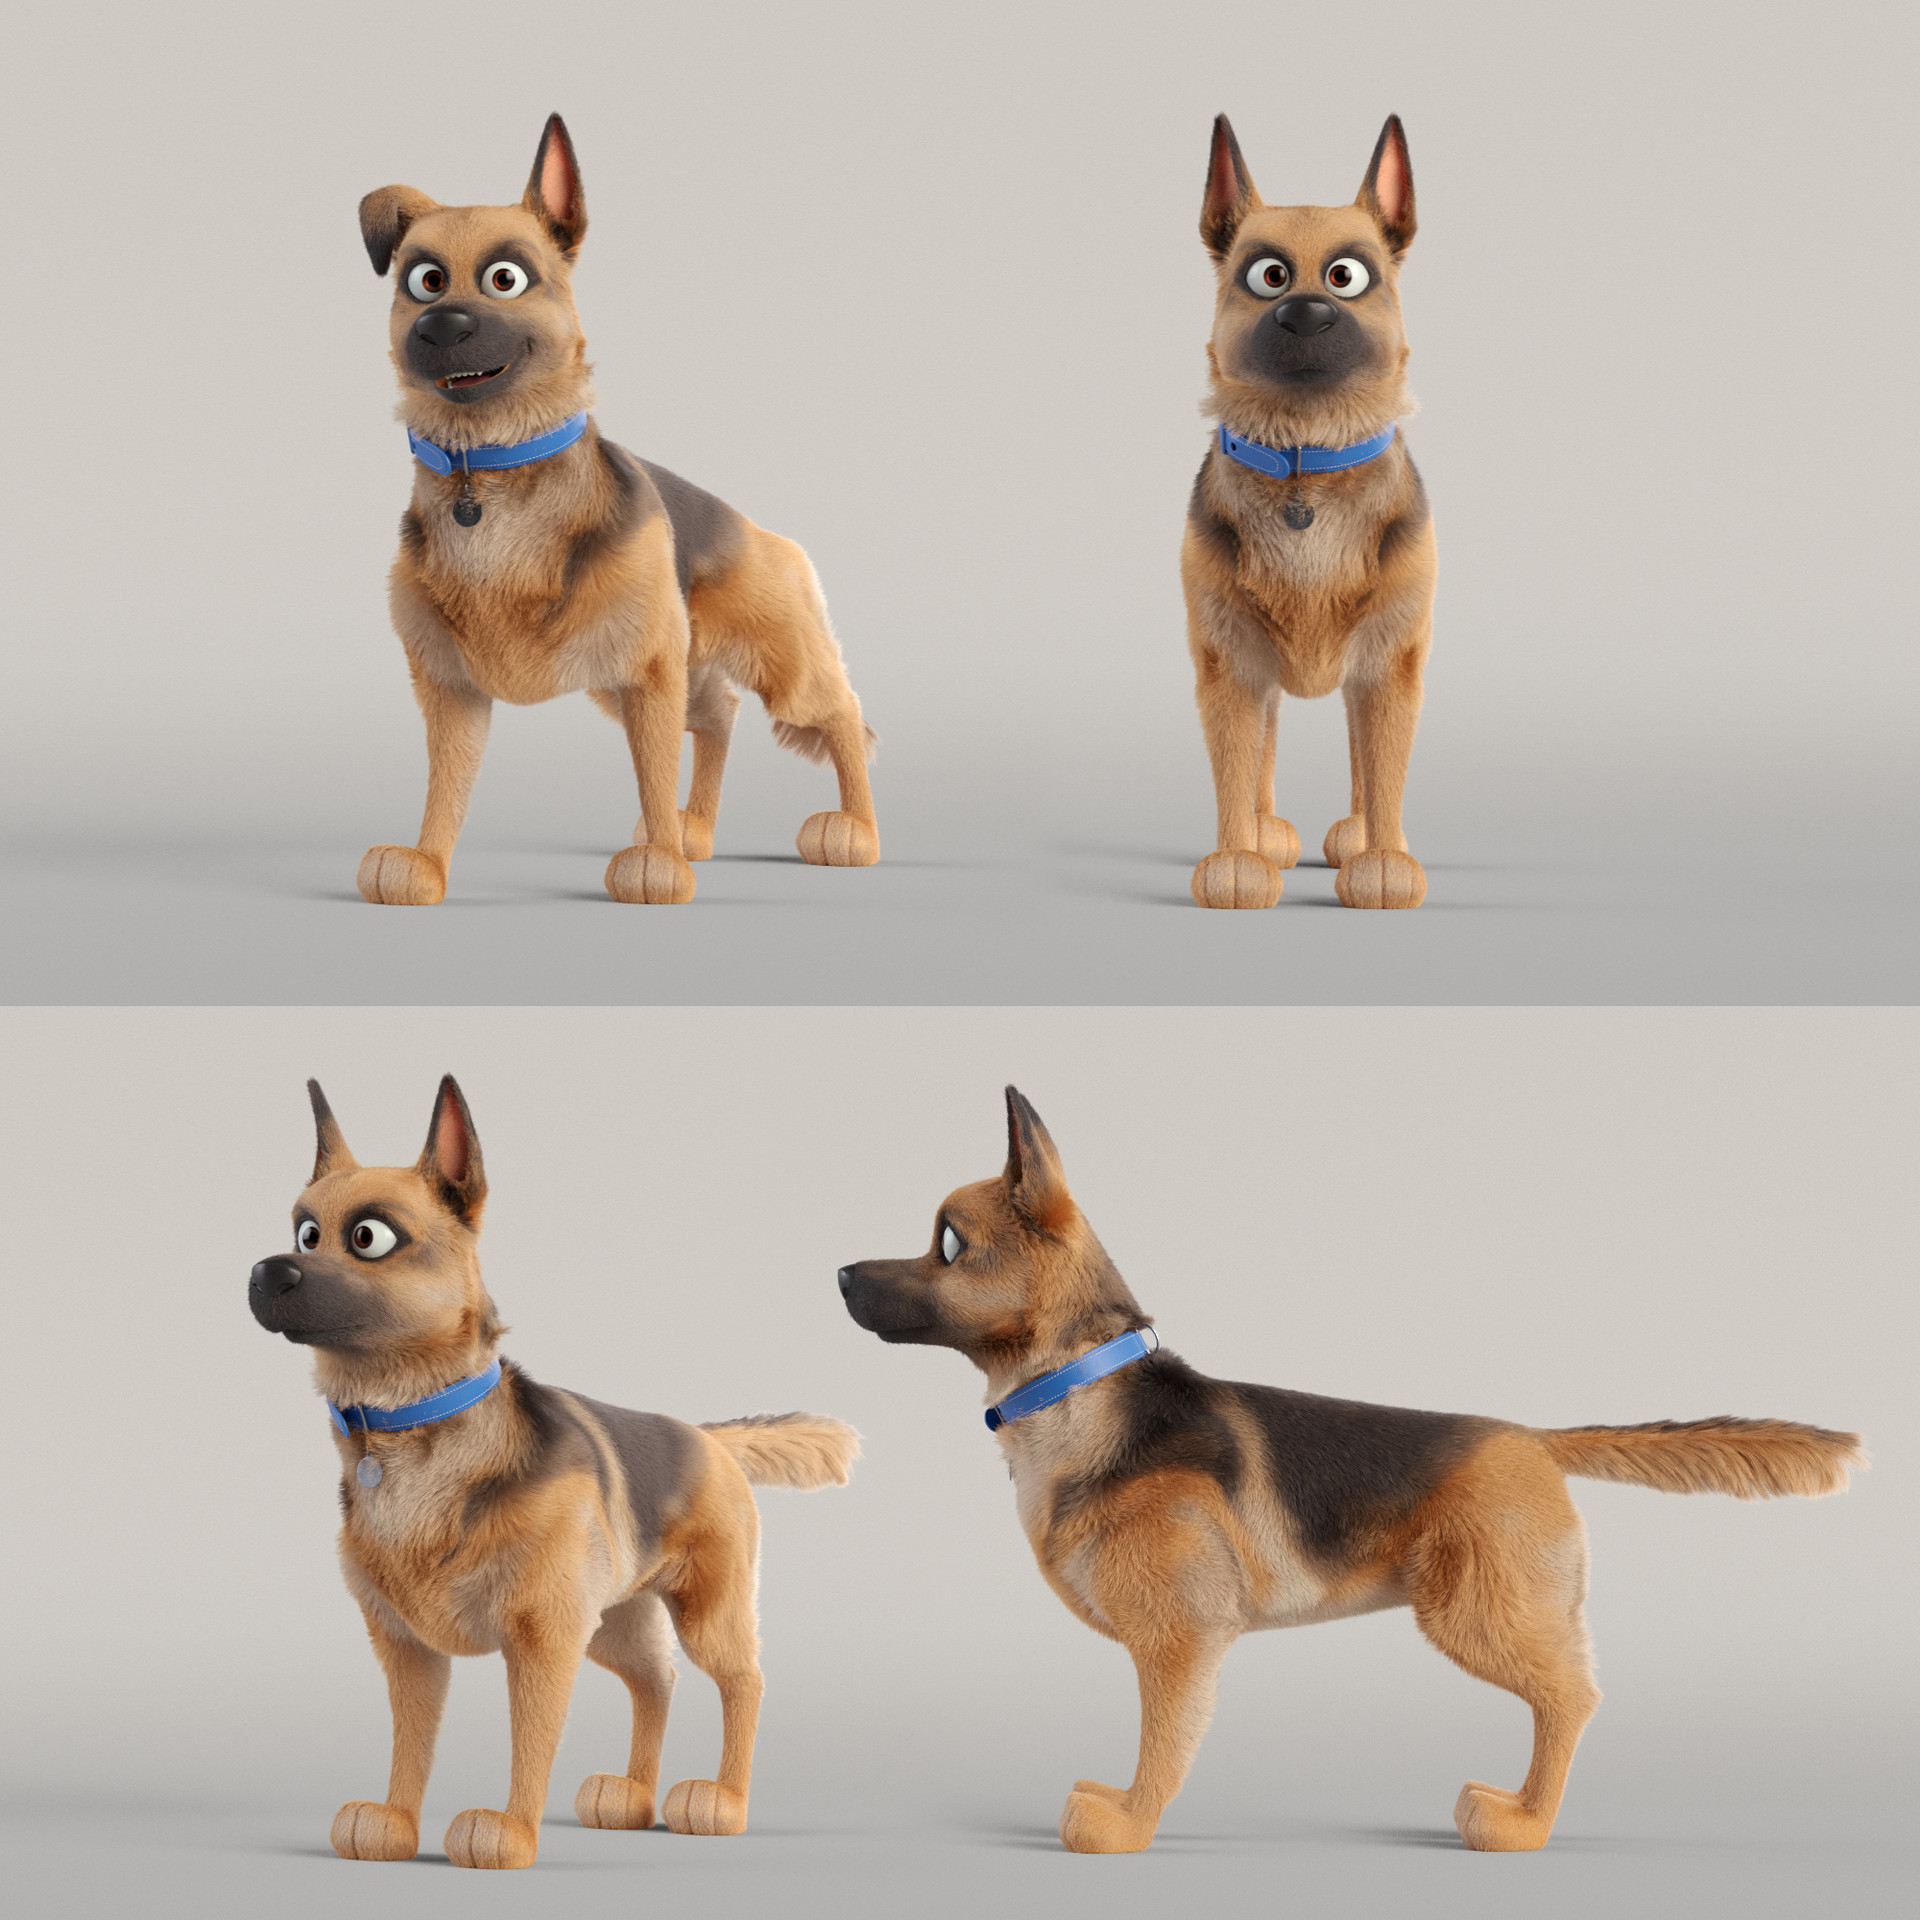 Groom and character test renders